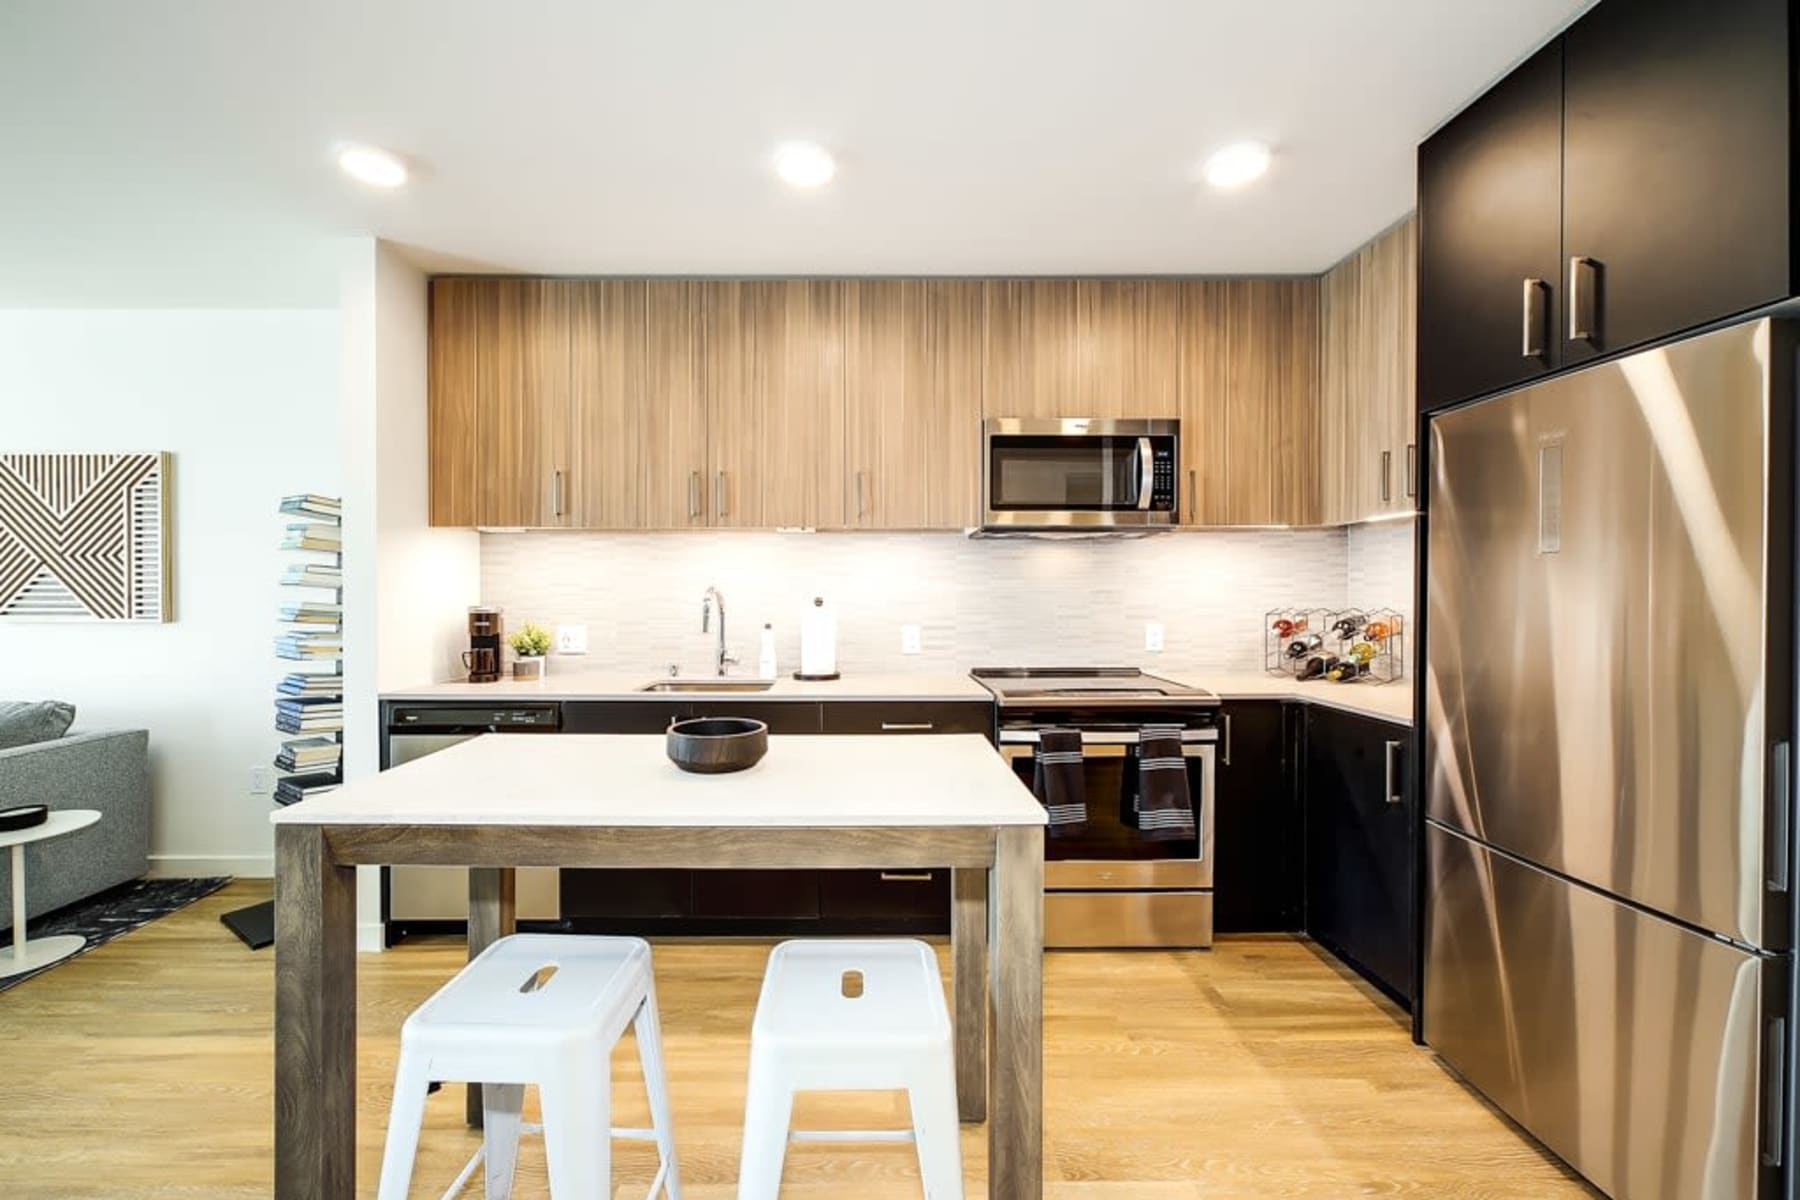 Our Apartments in Redmond, Washington offer a Kitchen